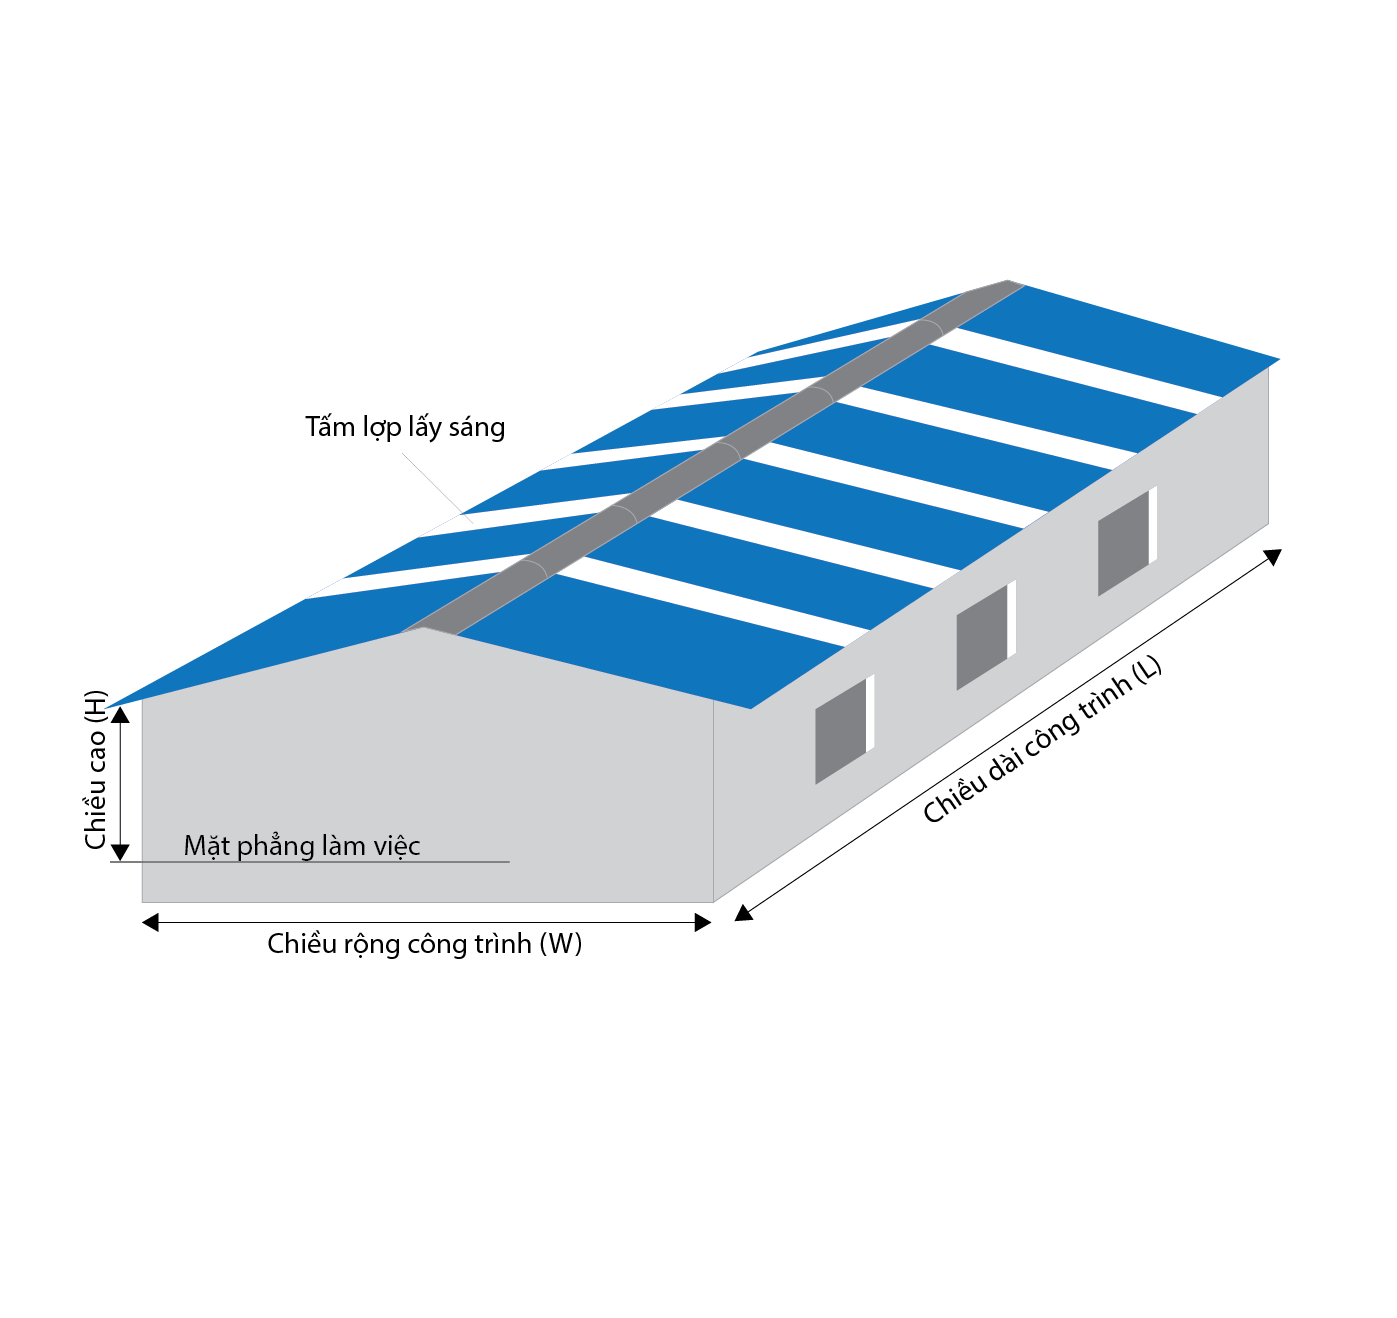 The area of translucent roofing